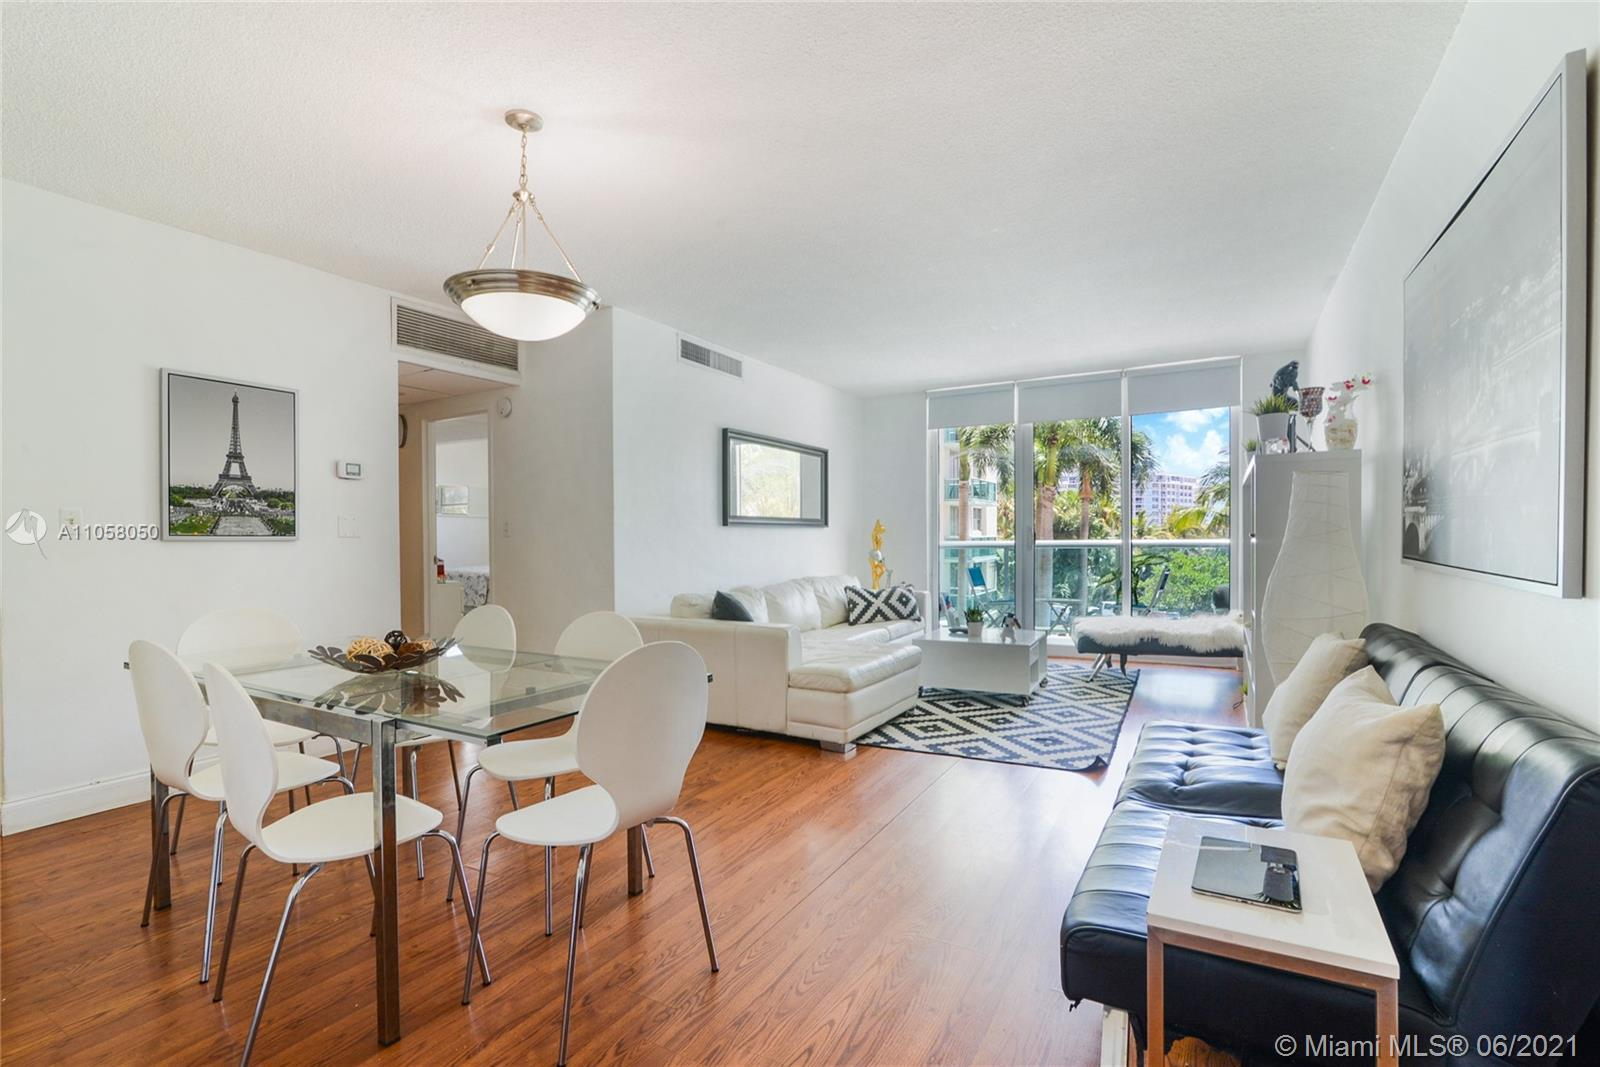 Sought after Condo on Hollywood Beach, great for investors: no rental restrictions, low HOA. Spaciou